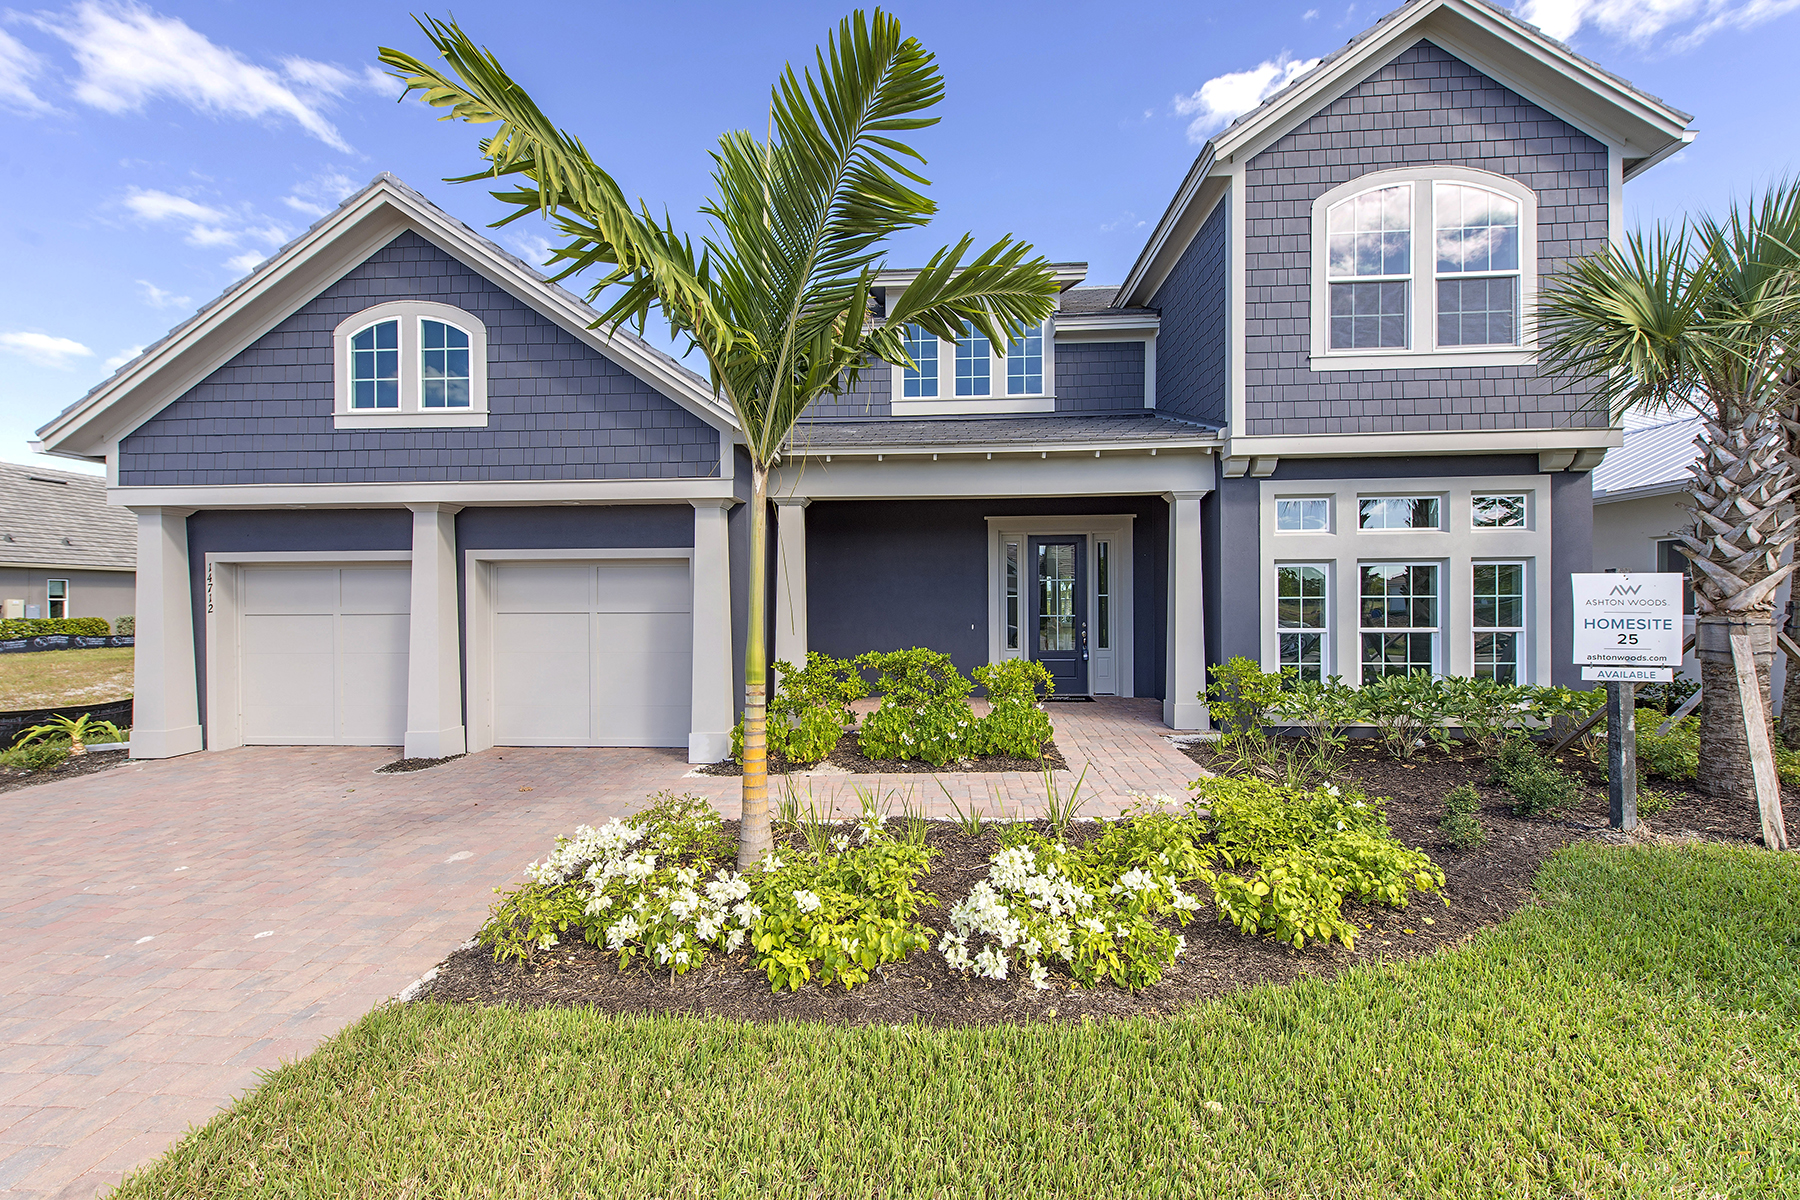 Single Family Home for Sale at NAPLES RESERVE - SAVANNAH LAKES 14712 Windward Pl Naples, Florida, 34114 United States